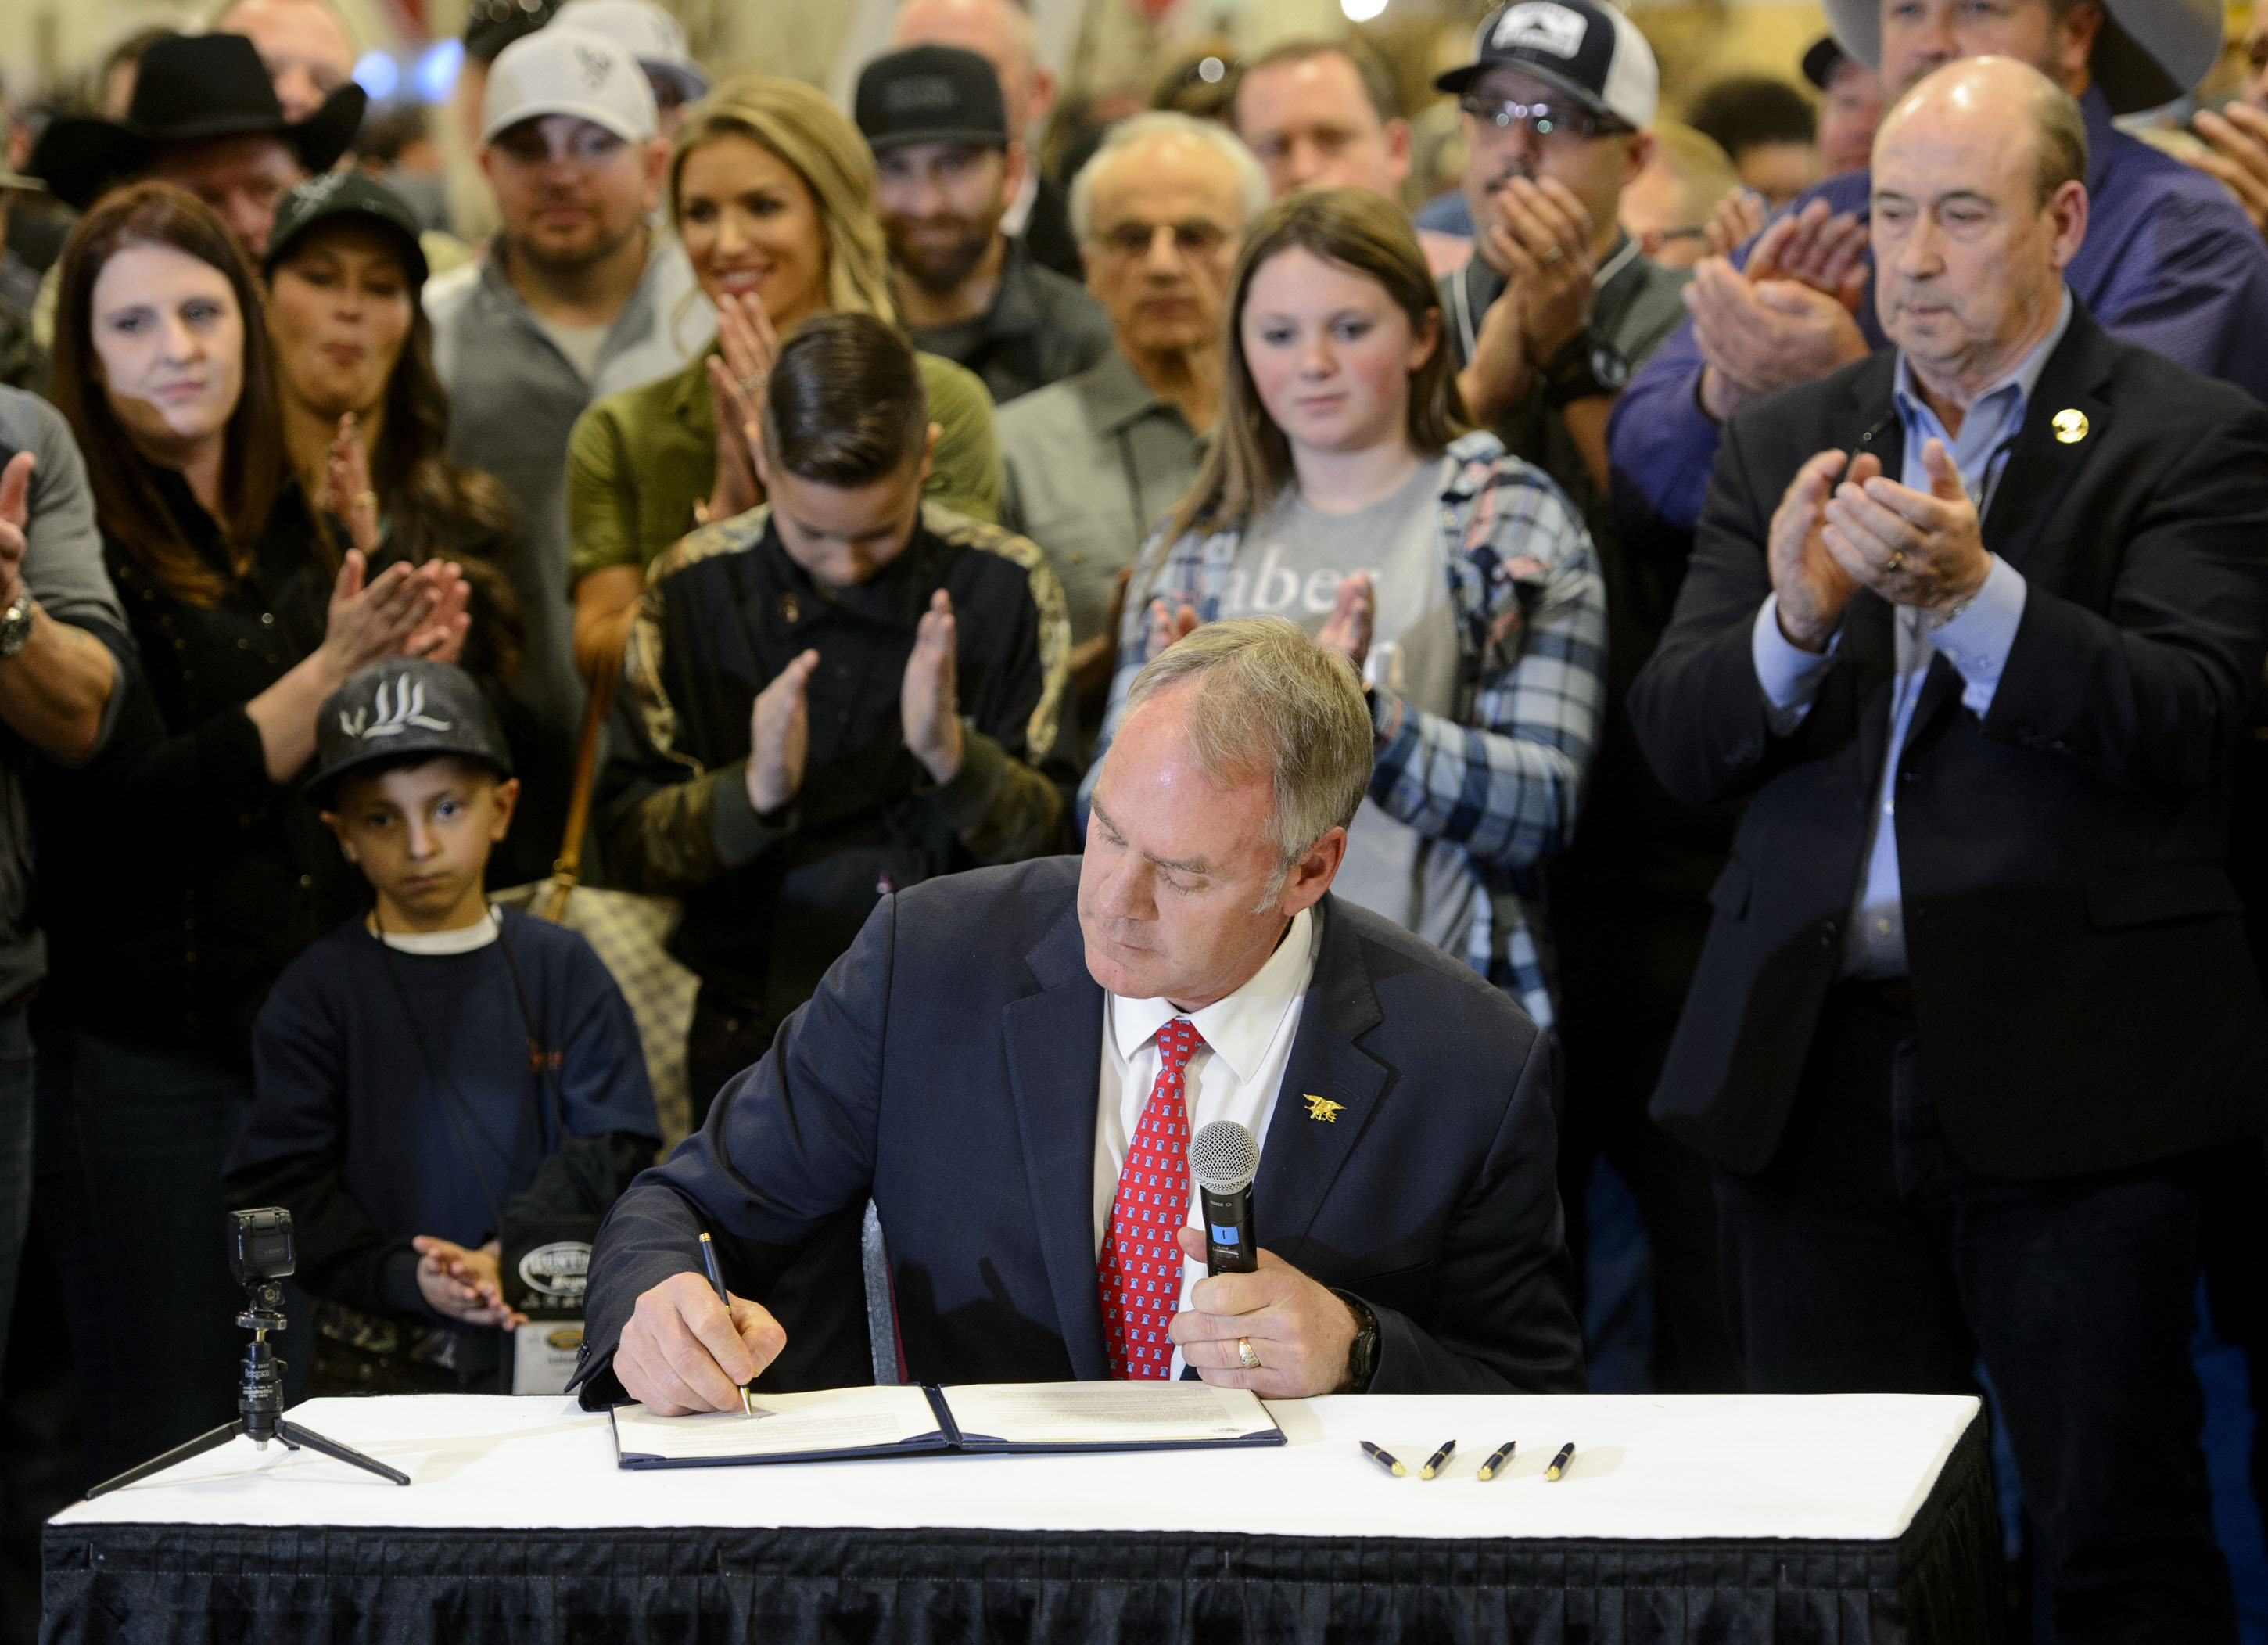 (Steve Griffin  |  The Salt Lake Tribune)  U.S. Secretary of the Interior Ryan Zinke, in an appearance at the Western Hunting and Conservation Expo at the Salt Palace Convention Center in Salt Lake City, signs Secretarial Order 3362, aimed at improving habitat quality and Western winter range and migration corridors for big game.